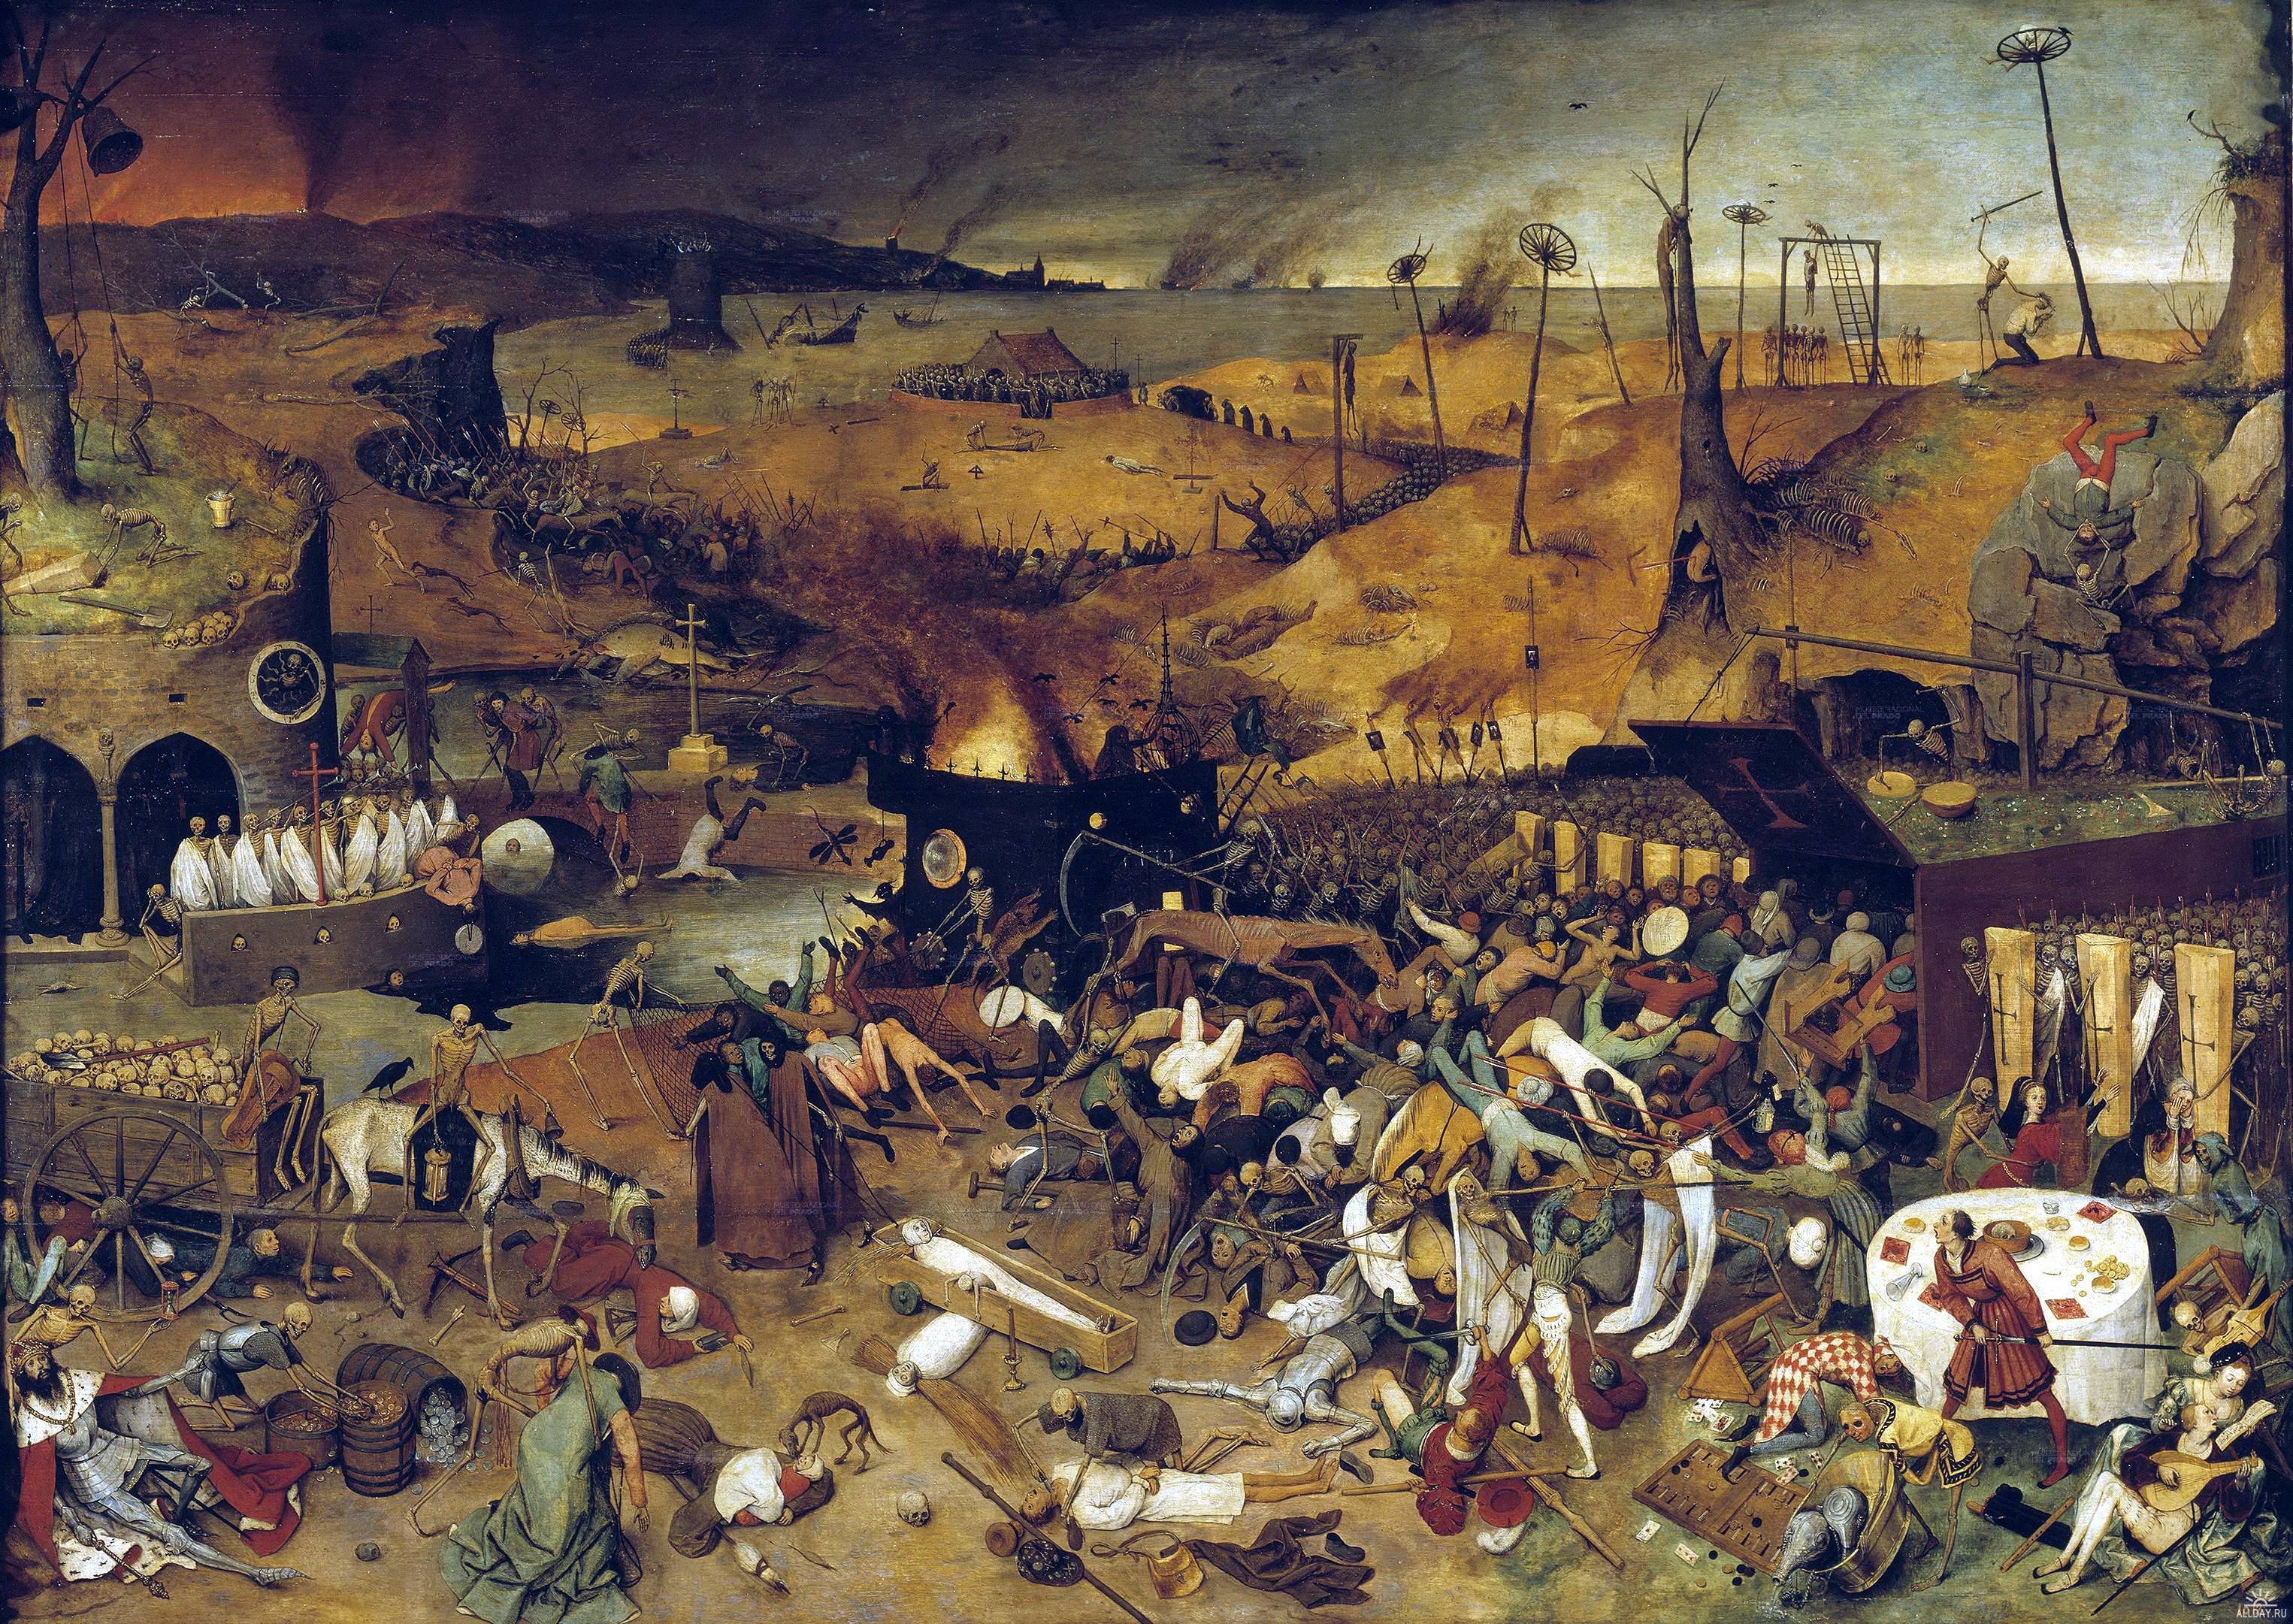 paintings apocalypse hieronymus bosch classic painting art desktop 3051x2161 hd wallpaper